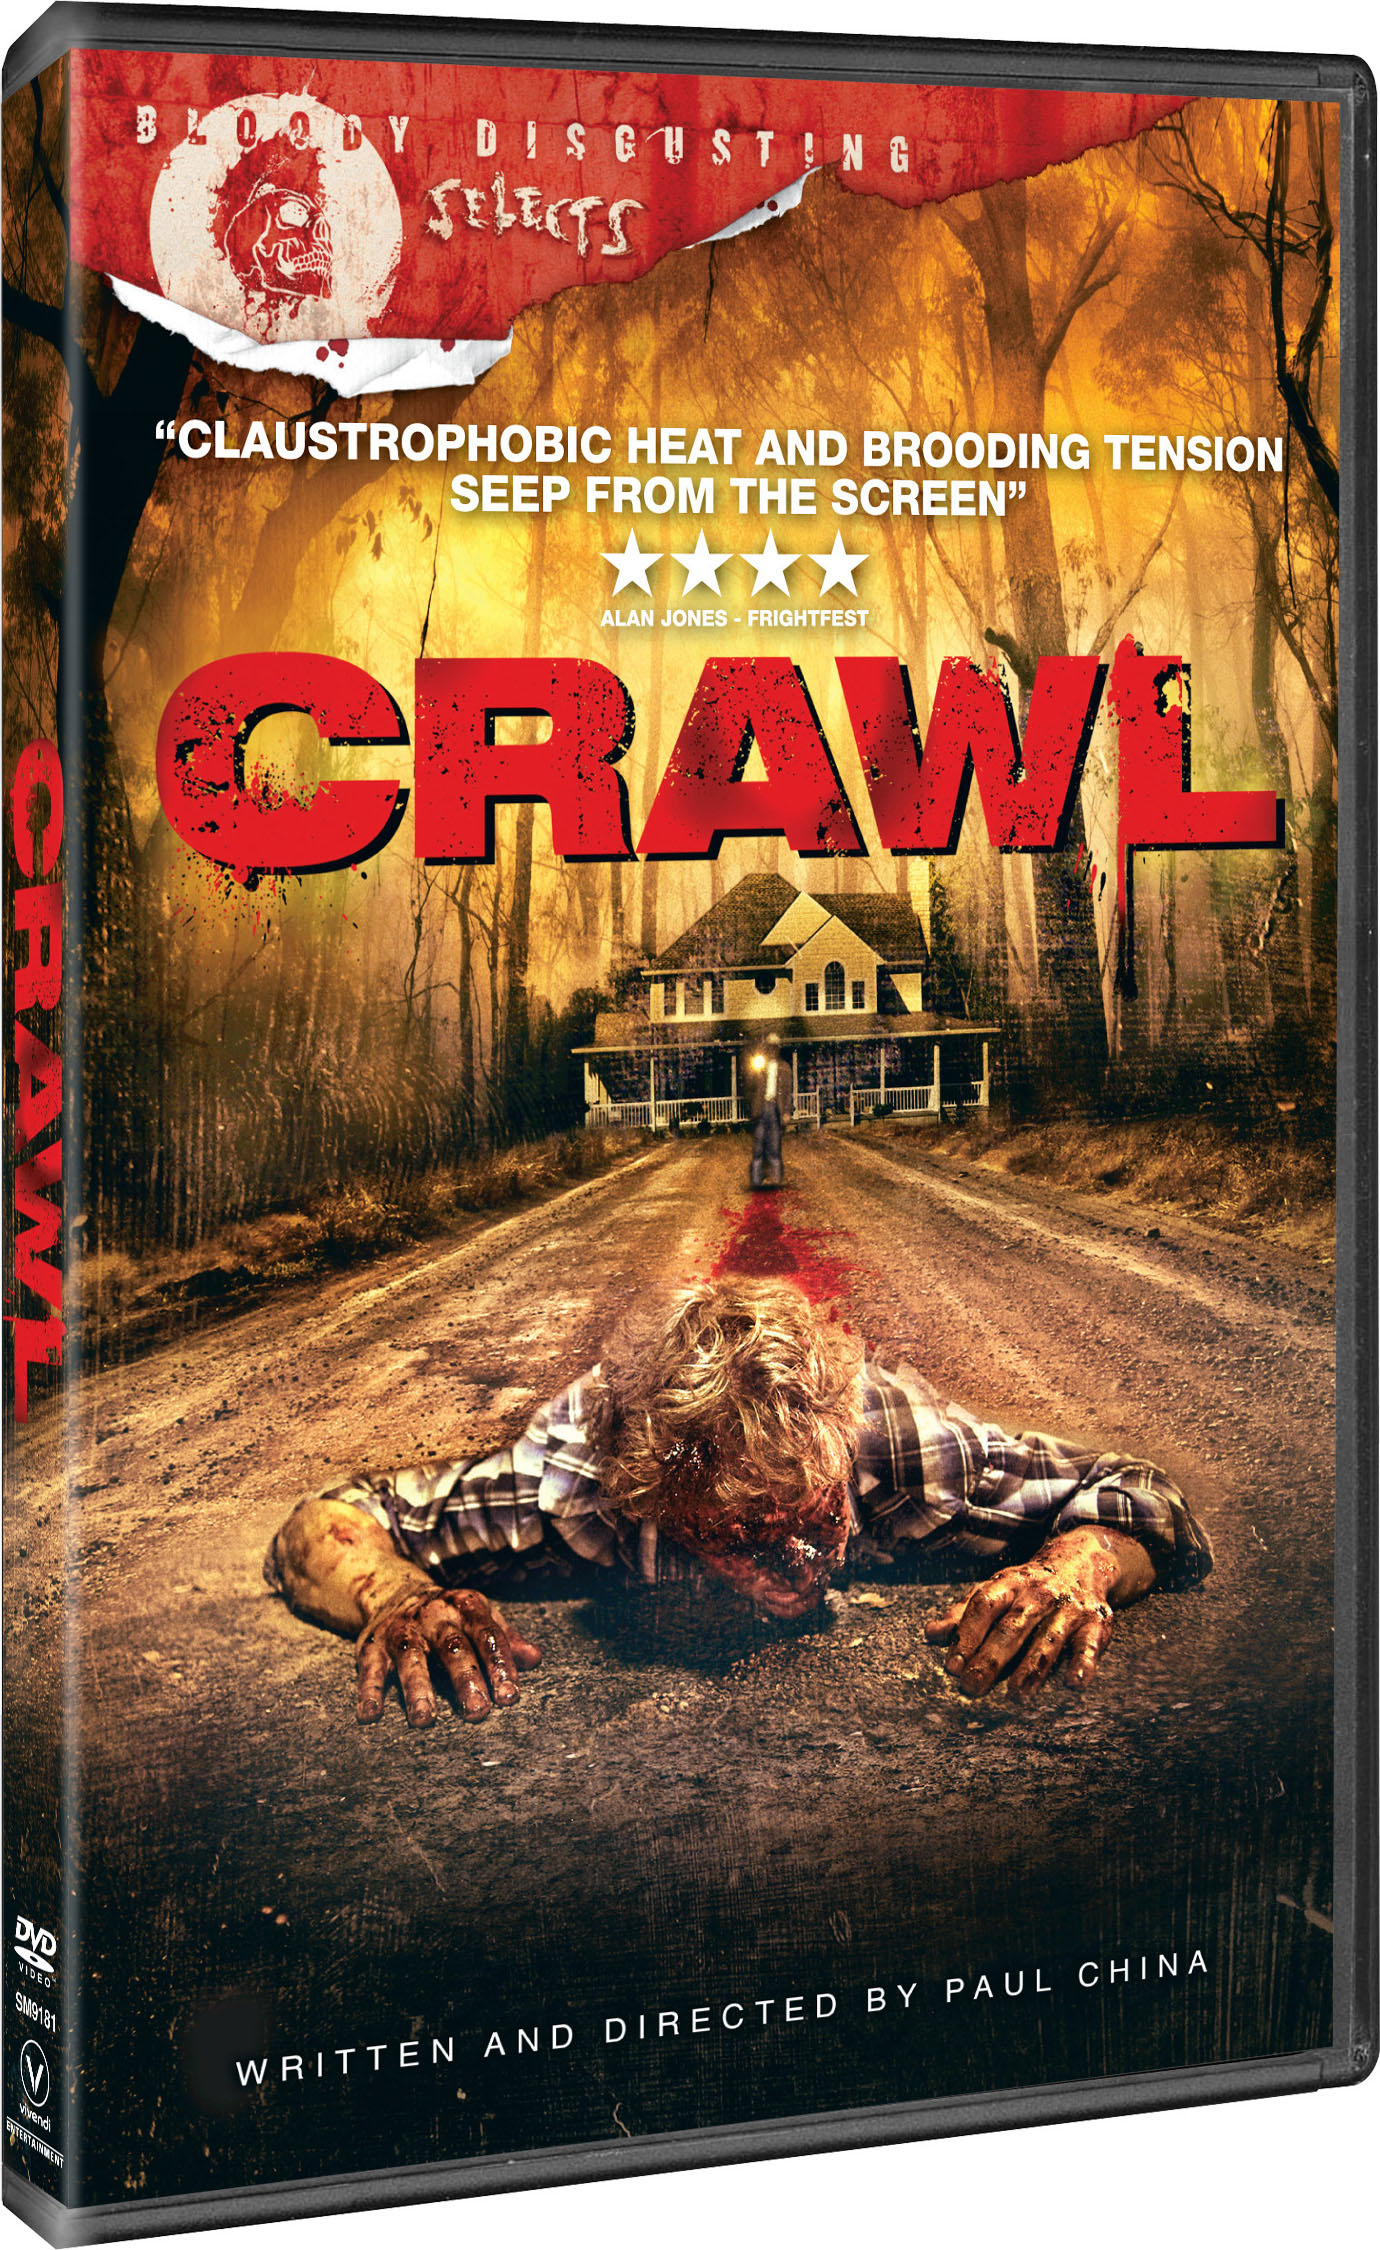 Crawl 3D New Clip From Crawl Released